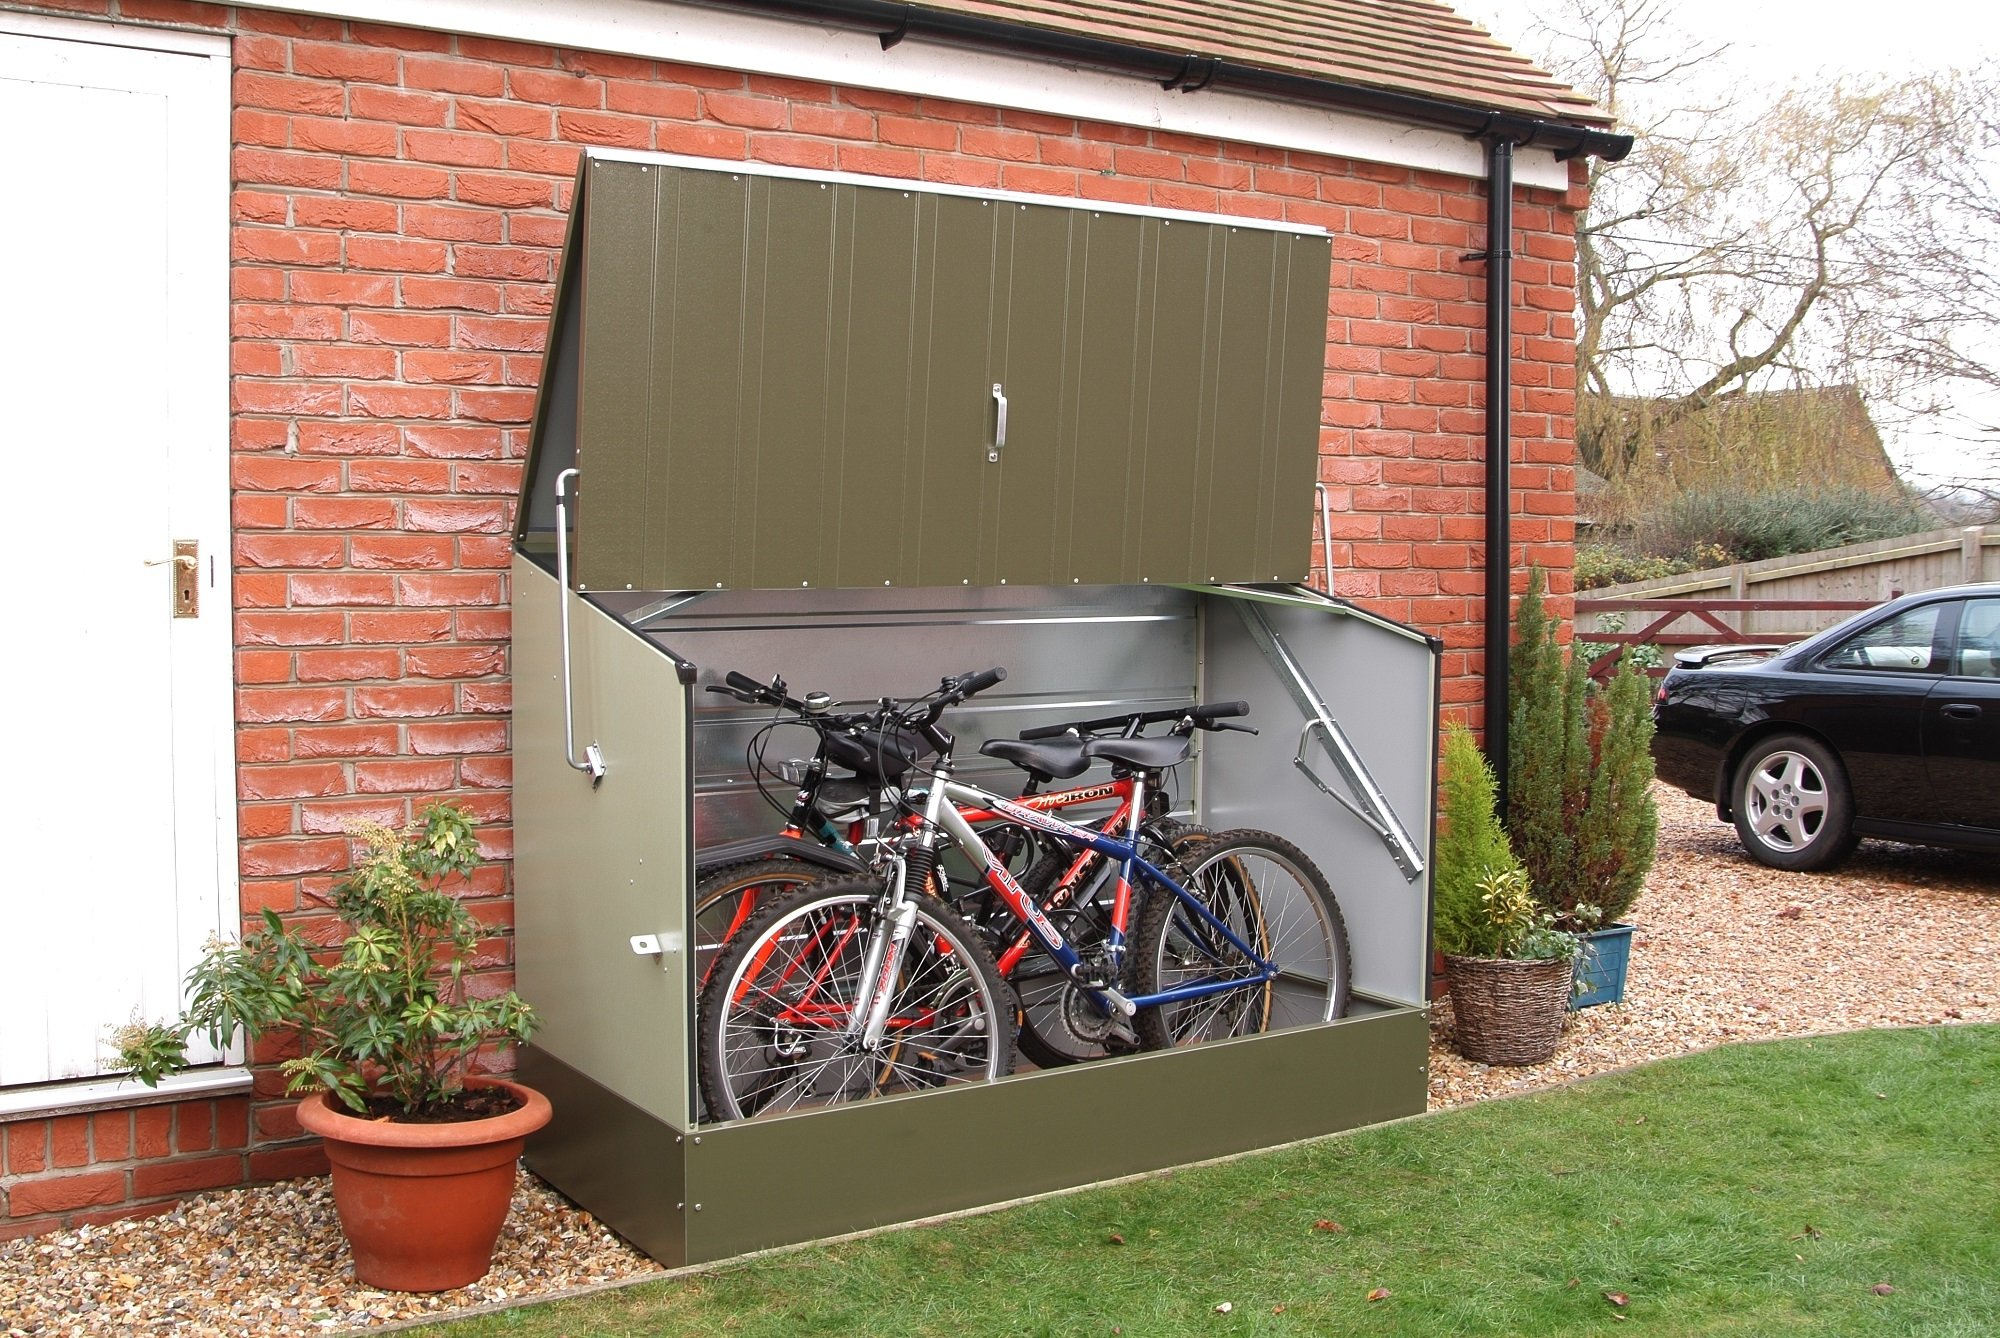 Best Outdoor Bike Storage Shed 2019 - Ideal Solution for a